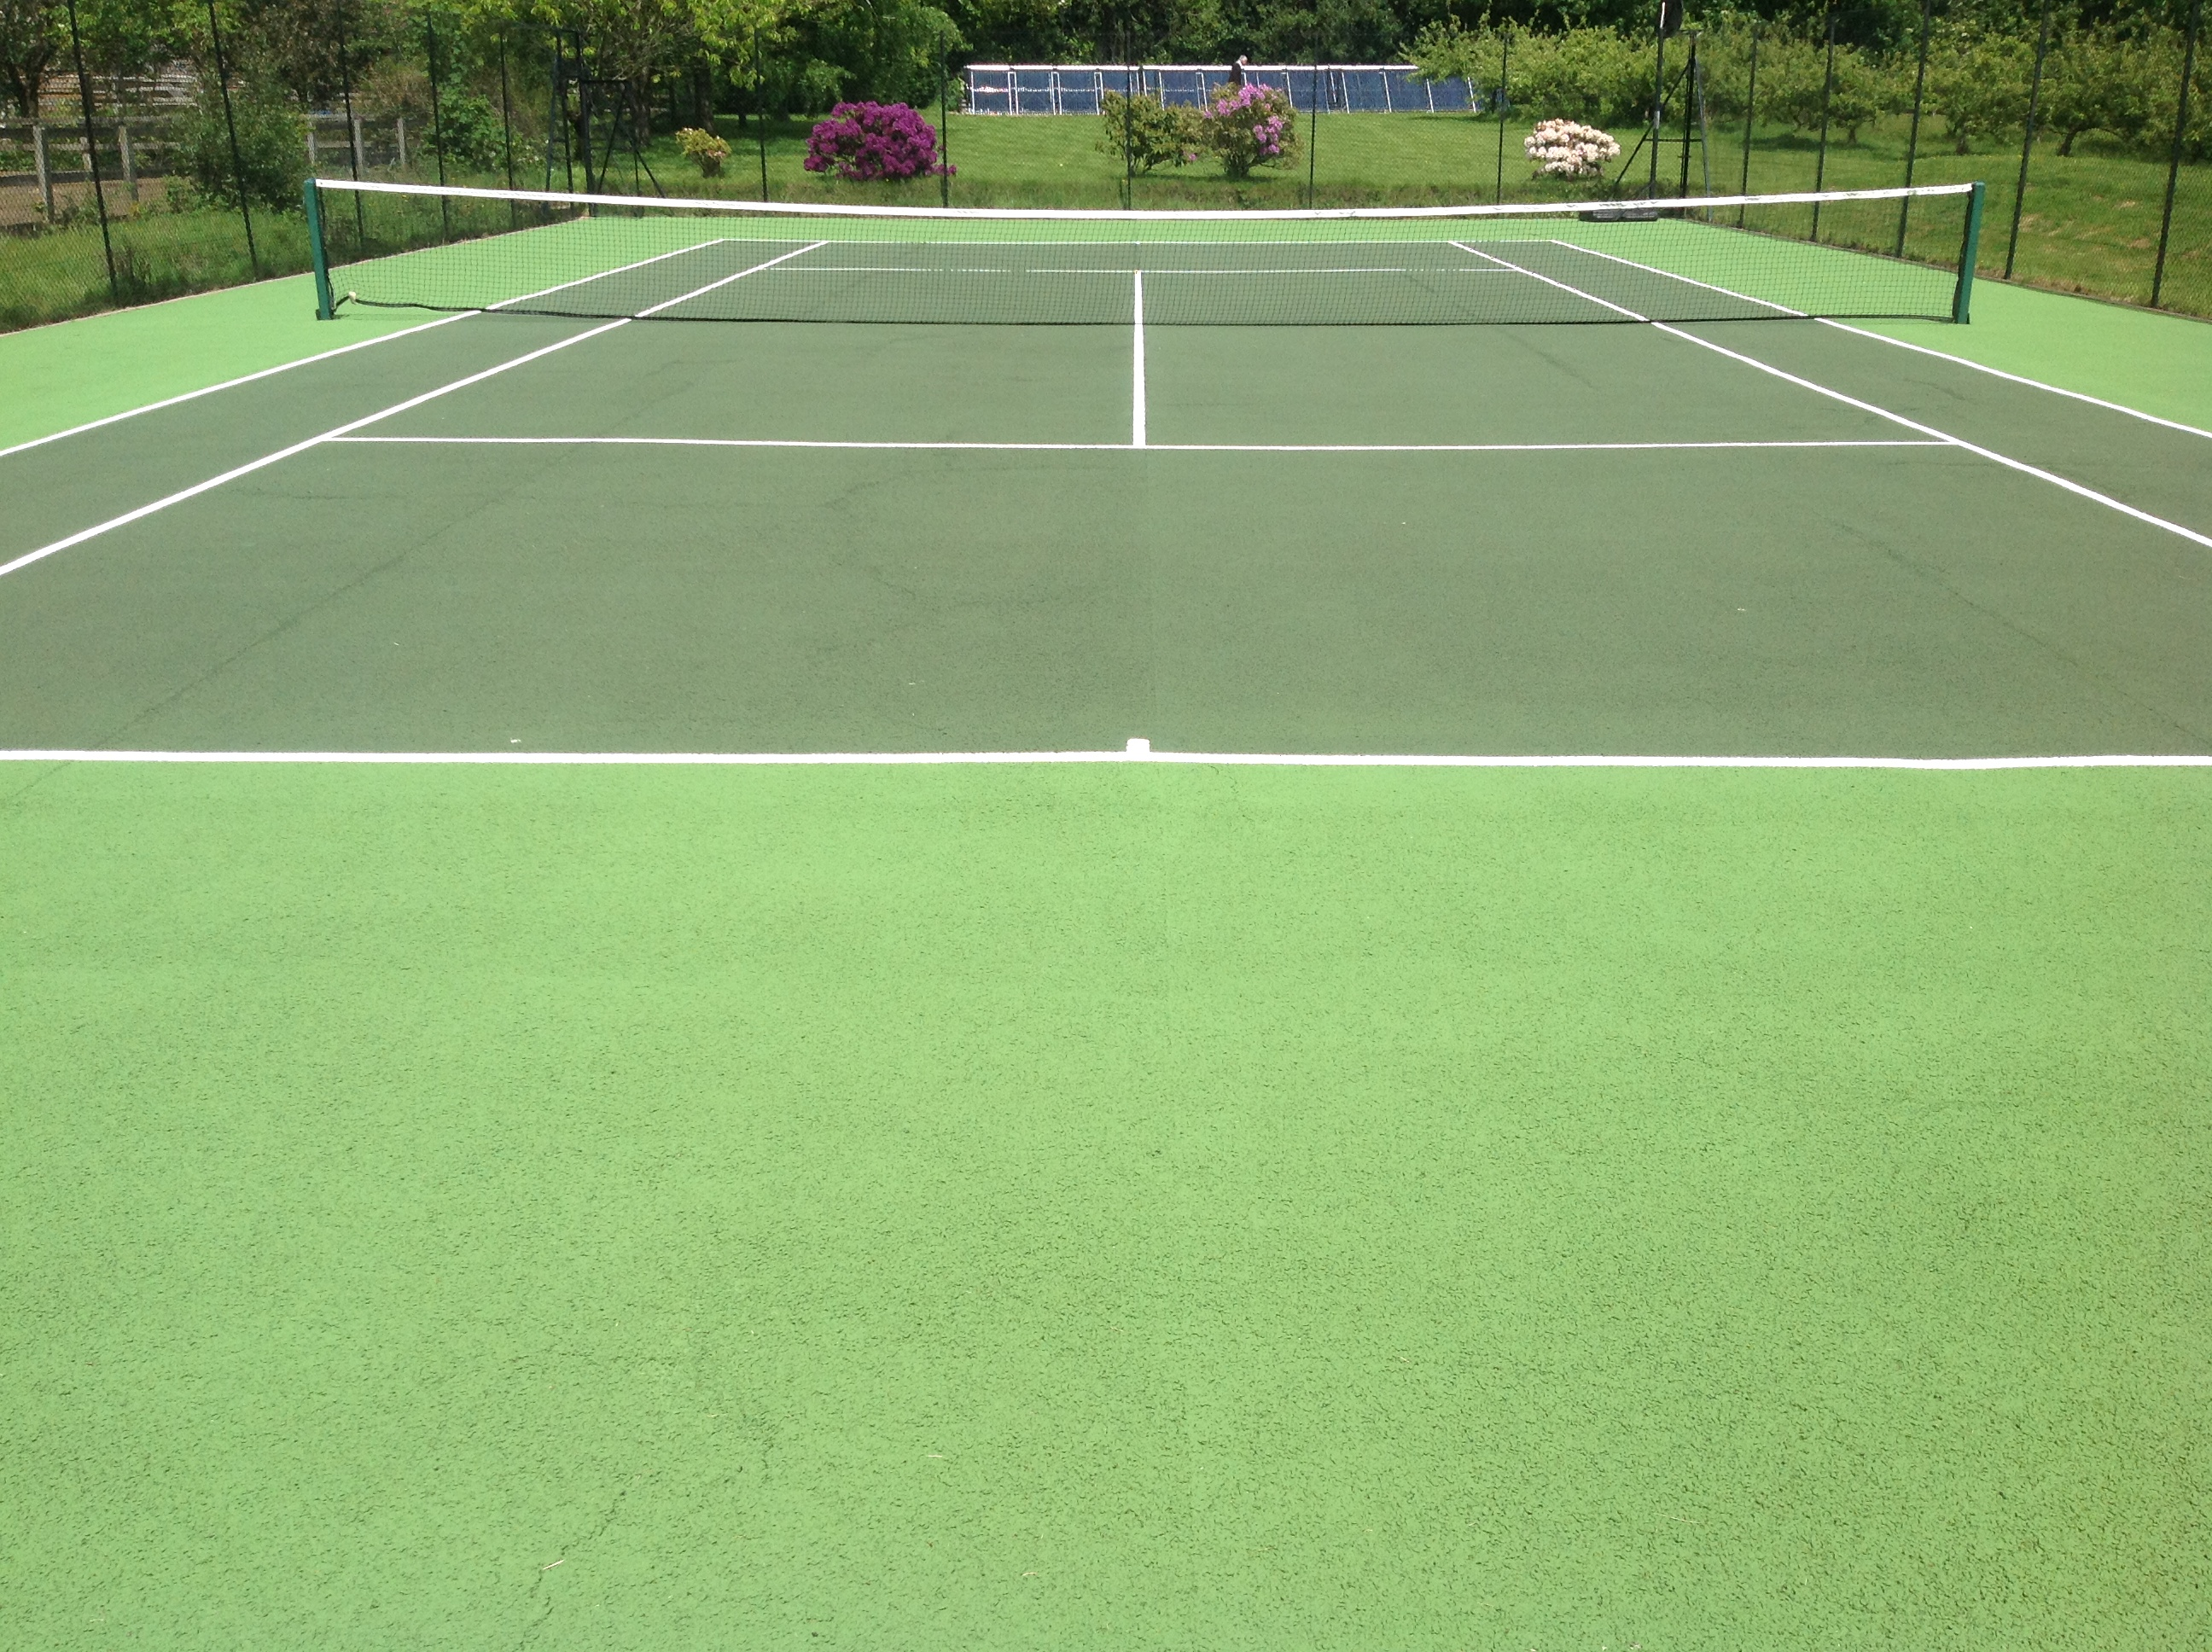 Tennis Court Renovation Renovate Existing Tennis Courts